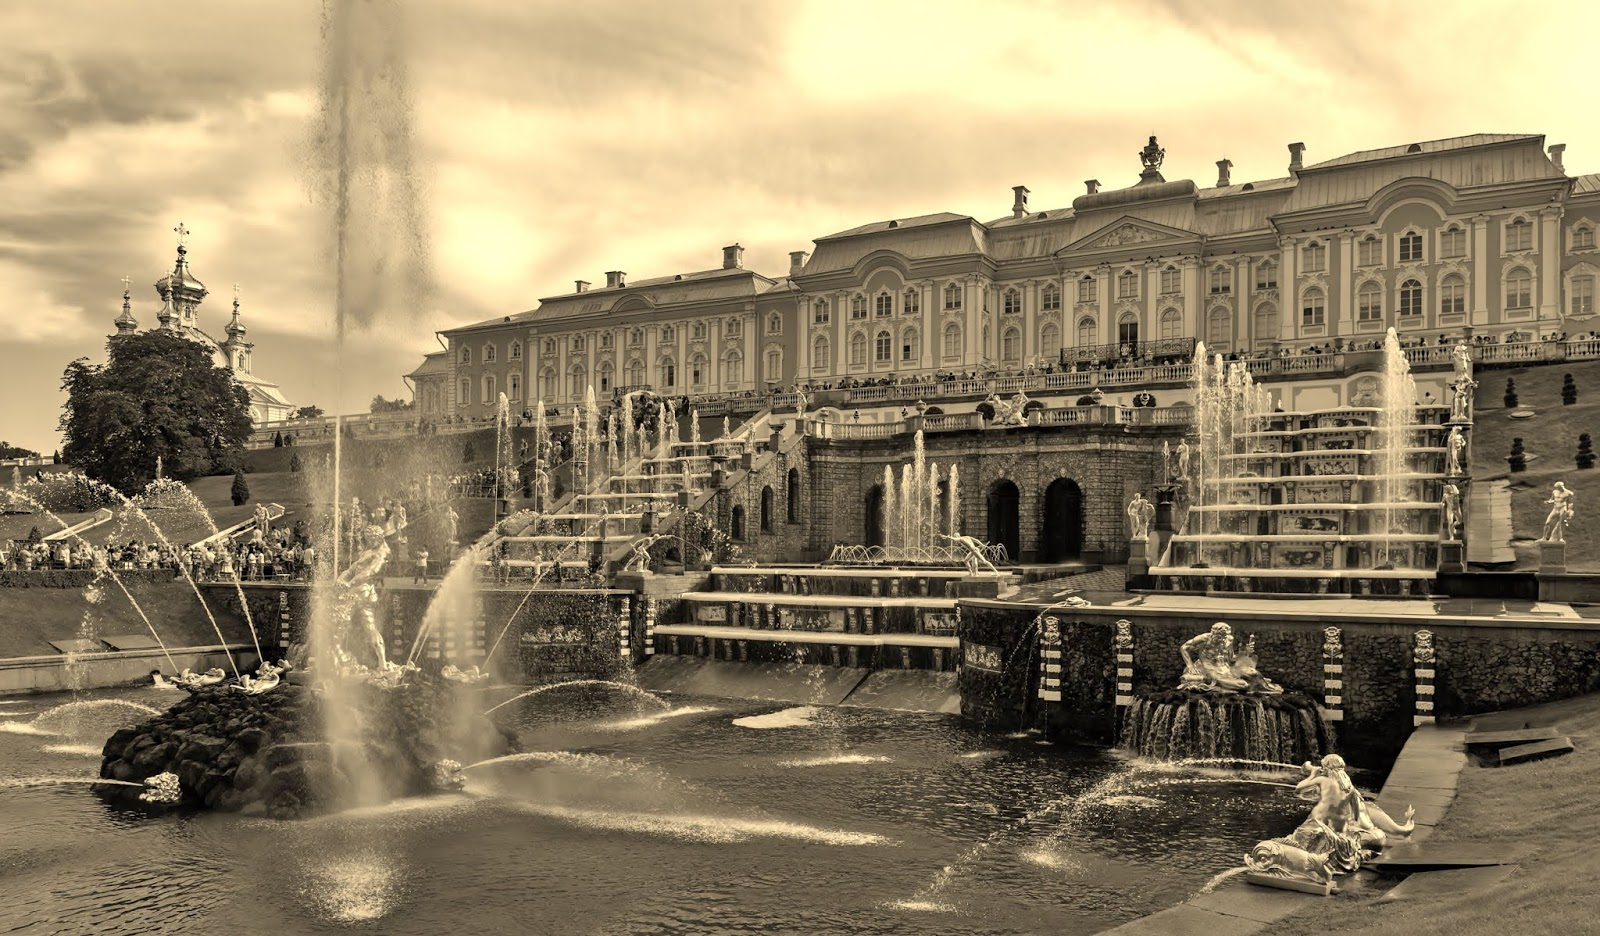 Peterhof_Palace,_Saint_Petersburg,_Russia